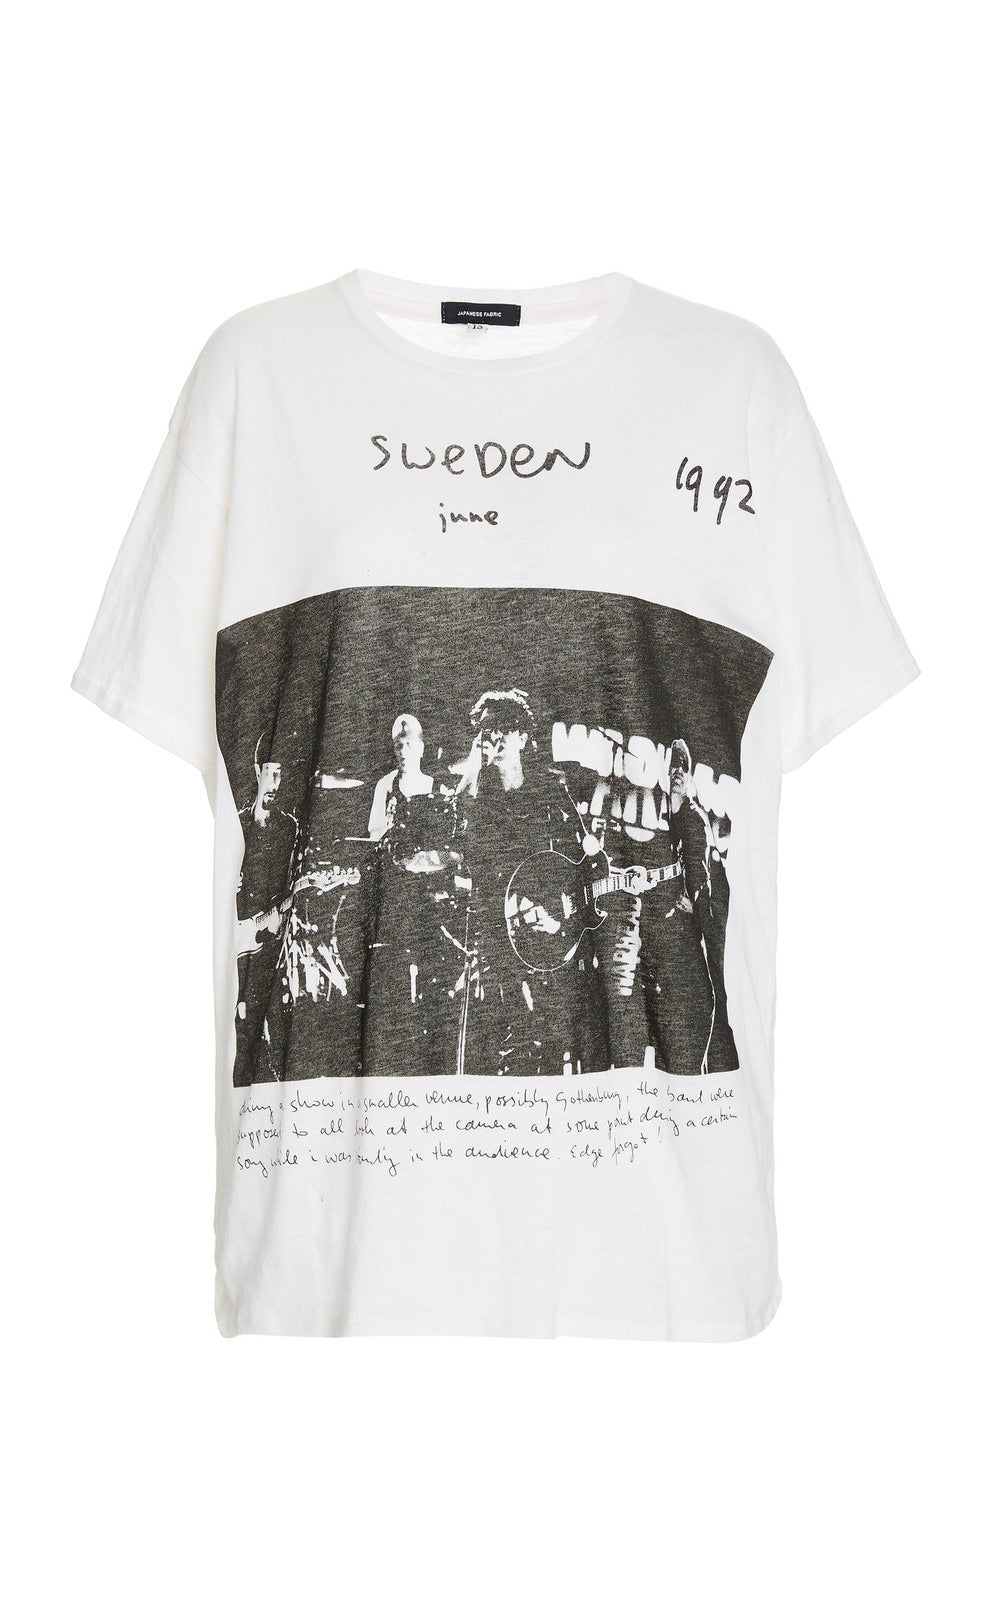 White U2 Sweden Printed Jersey Boy T-Shirt